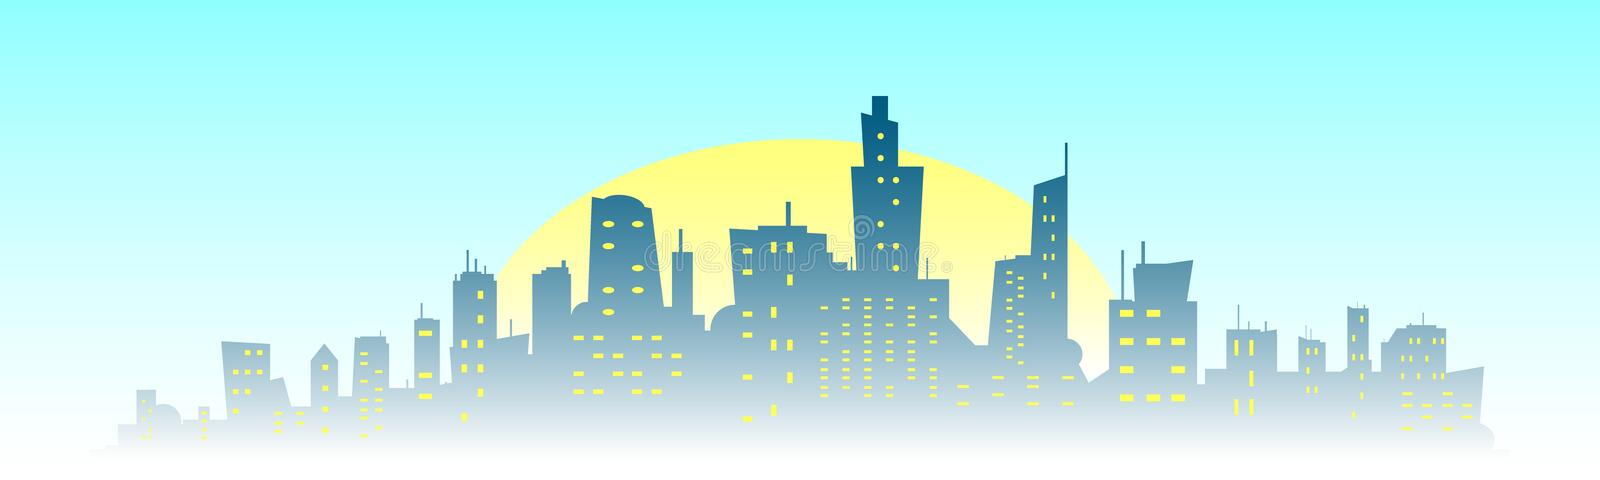 City building silhouette. royalty free illustration